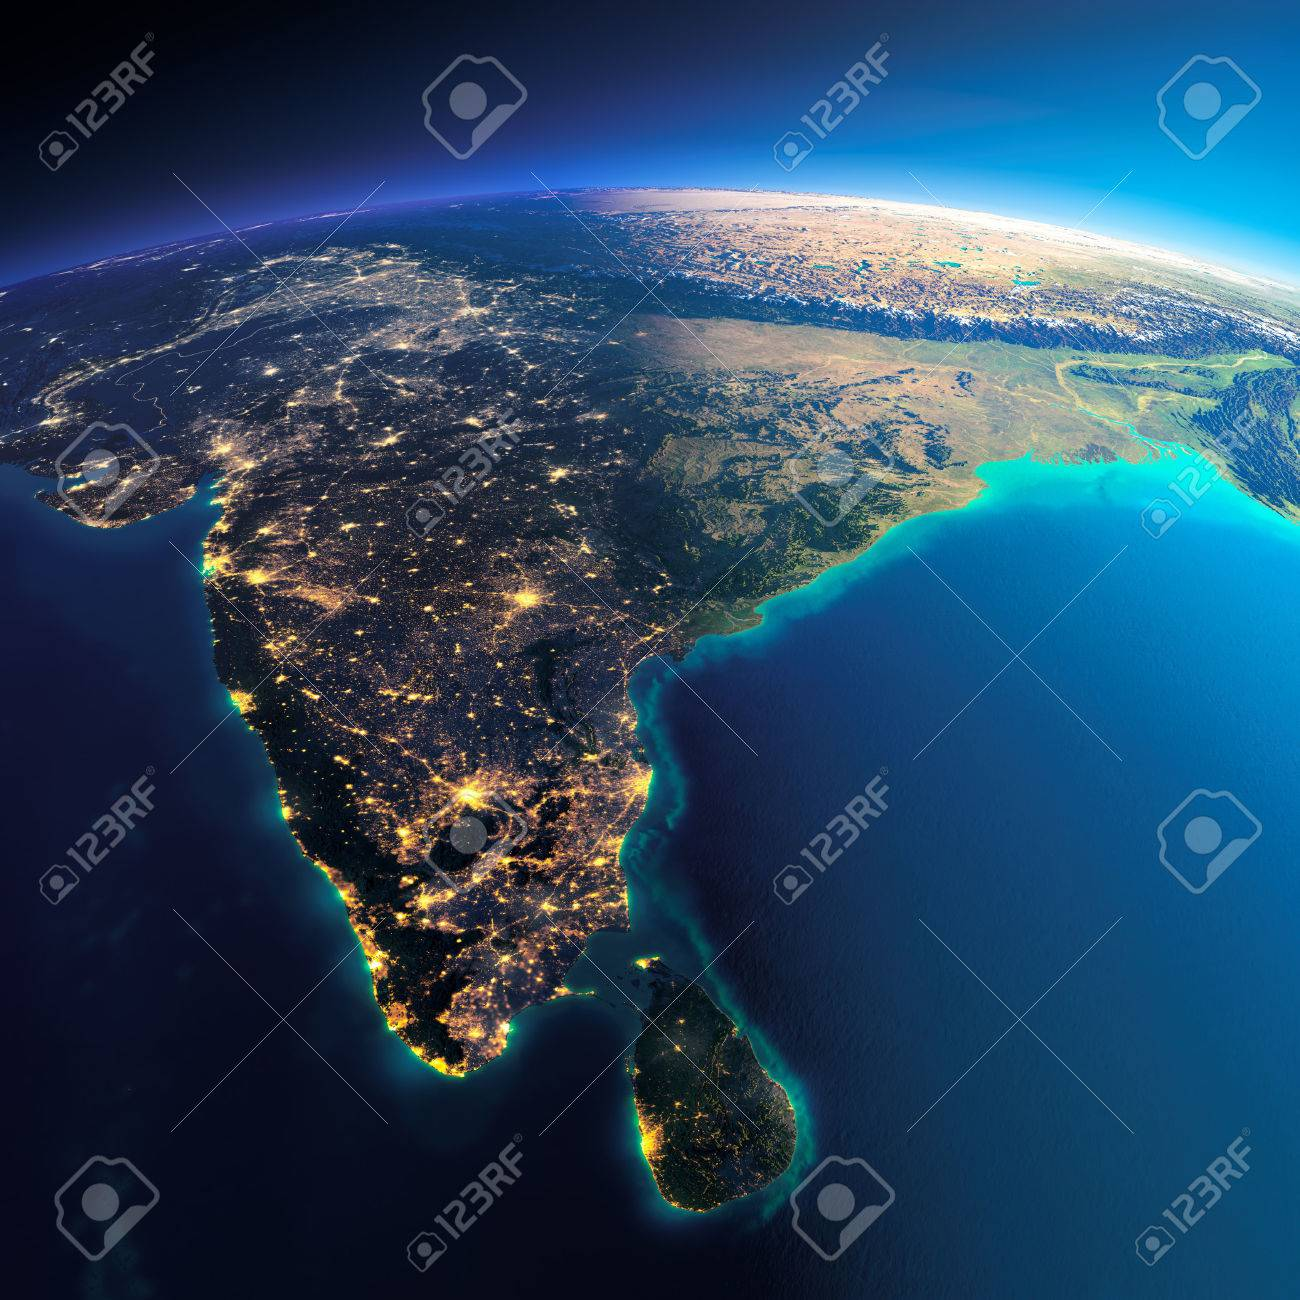 India map stock photos pictures royalty free india map images highly detailed planet earth night with glowing city lights gives way to day the gumiabroncs Choice Image